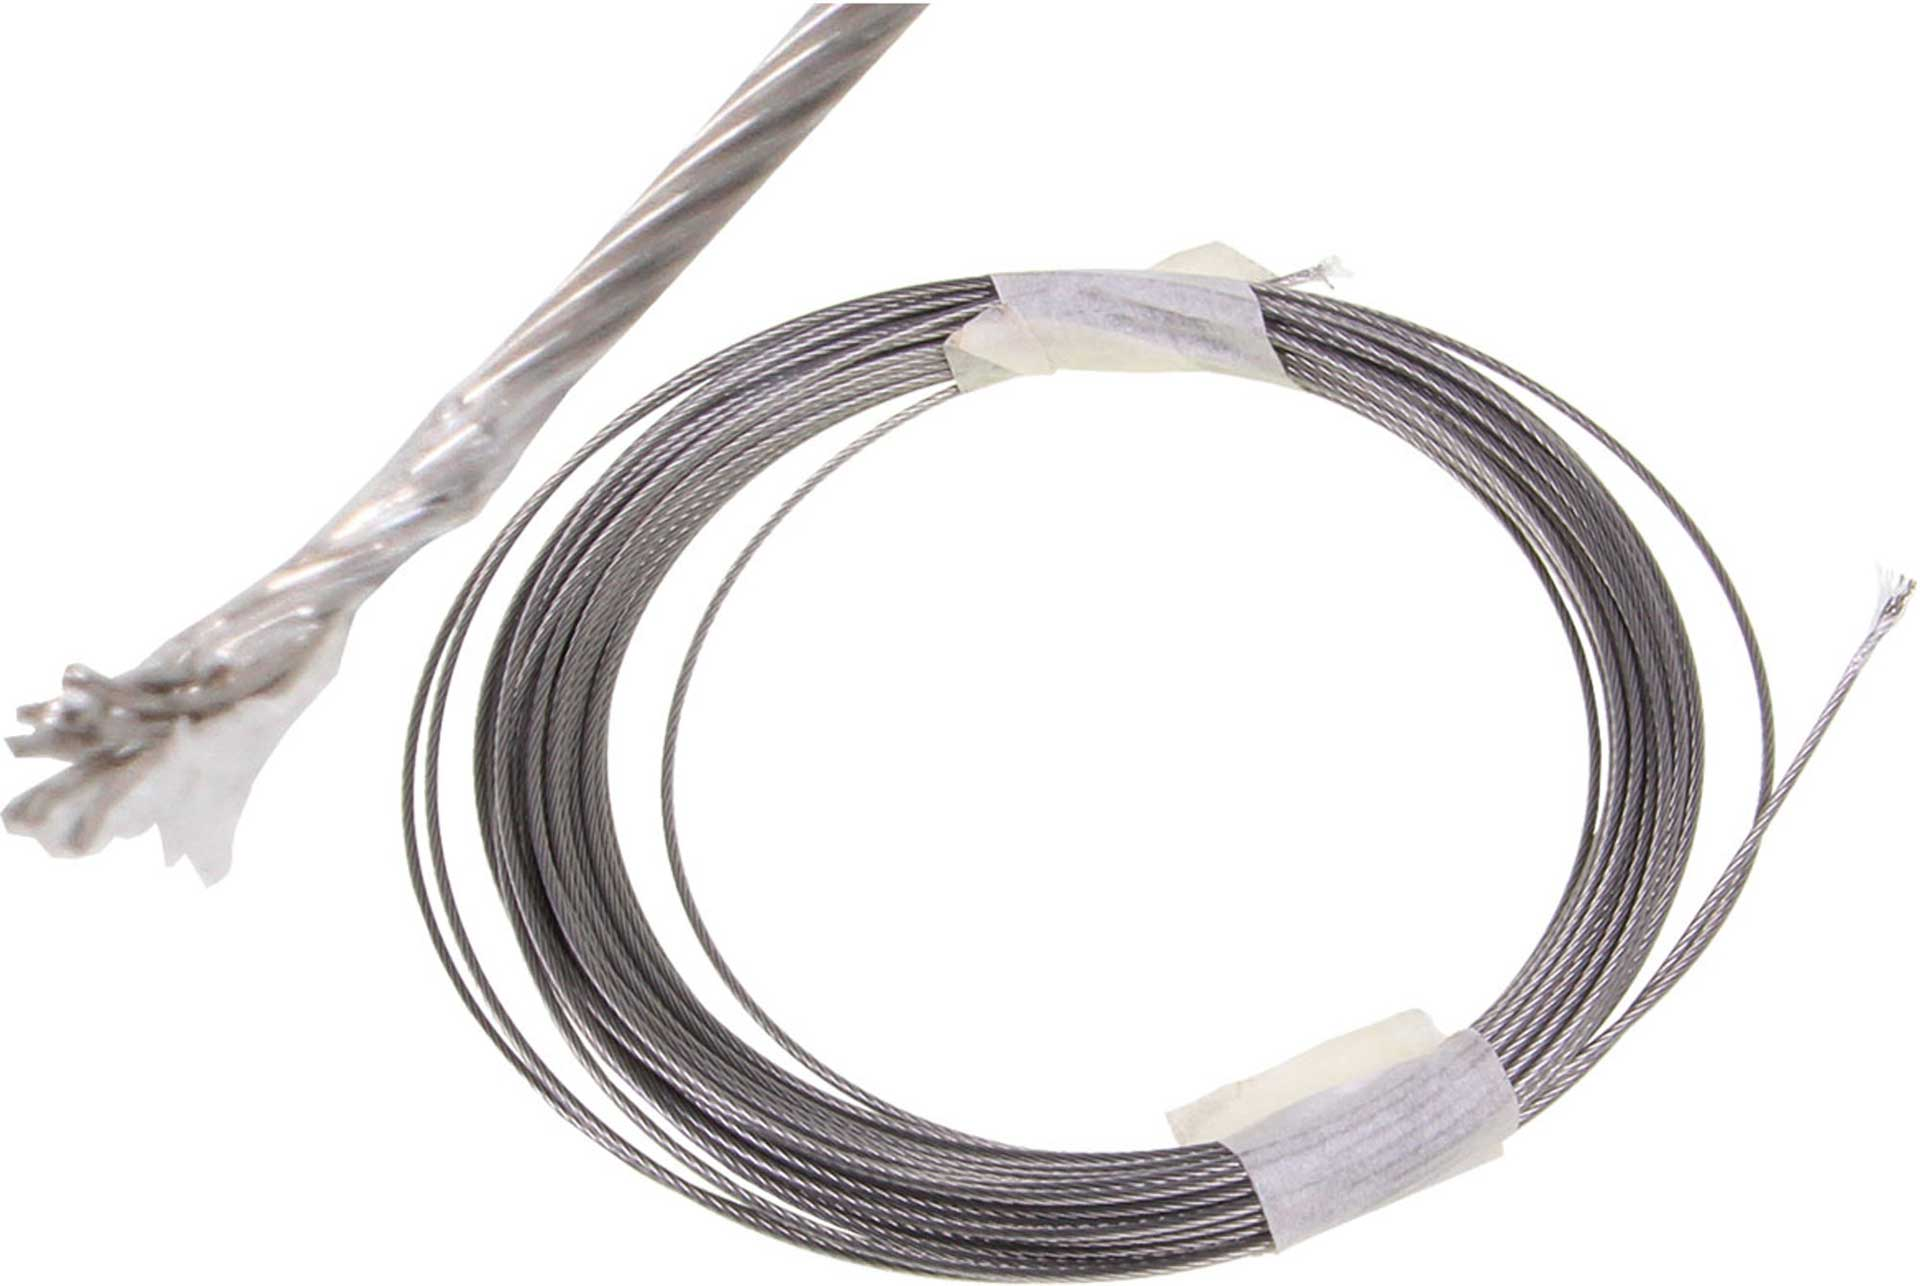 MODELLBAU LINDINGER STEEL FLEX WIRE 0,7MM NYLON COVERING 10M NATURAL, 29,2KG MAXIMUM STRENGTH